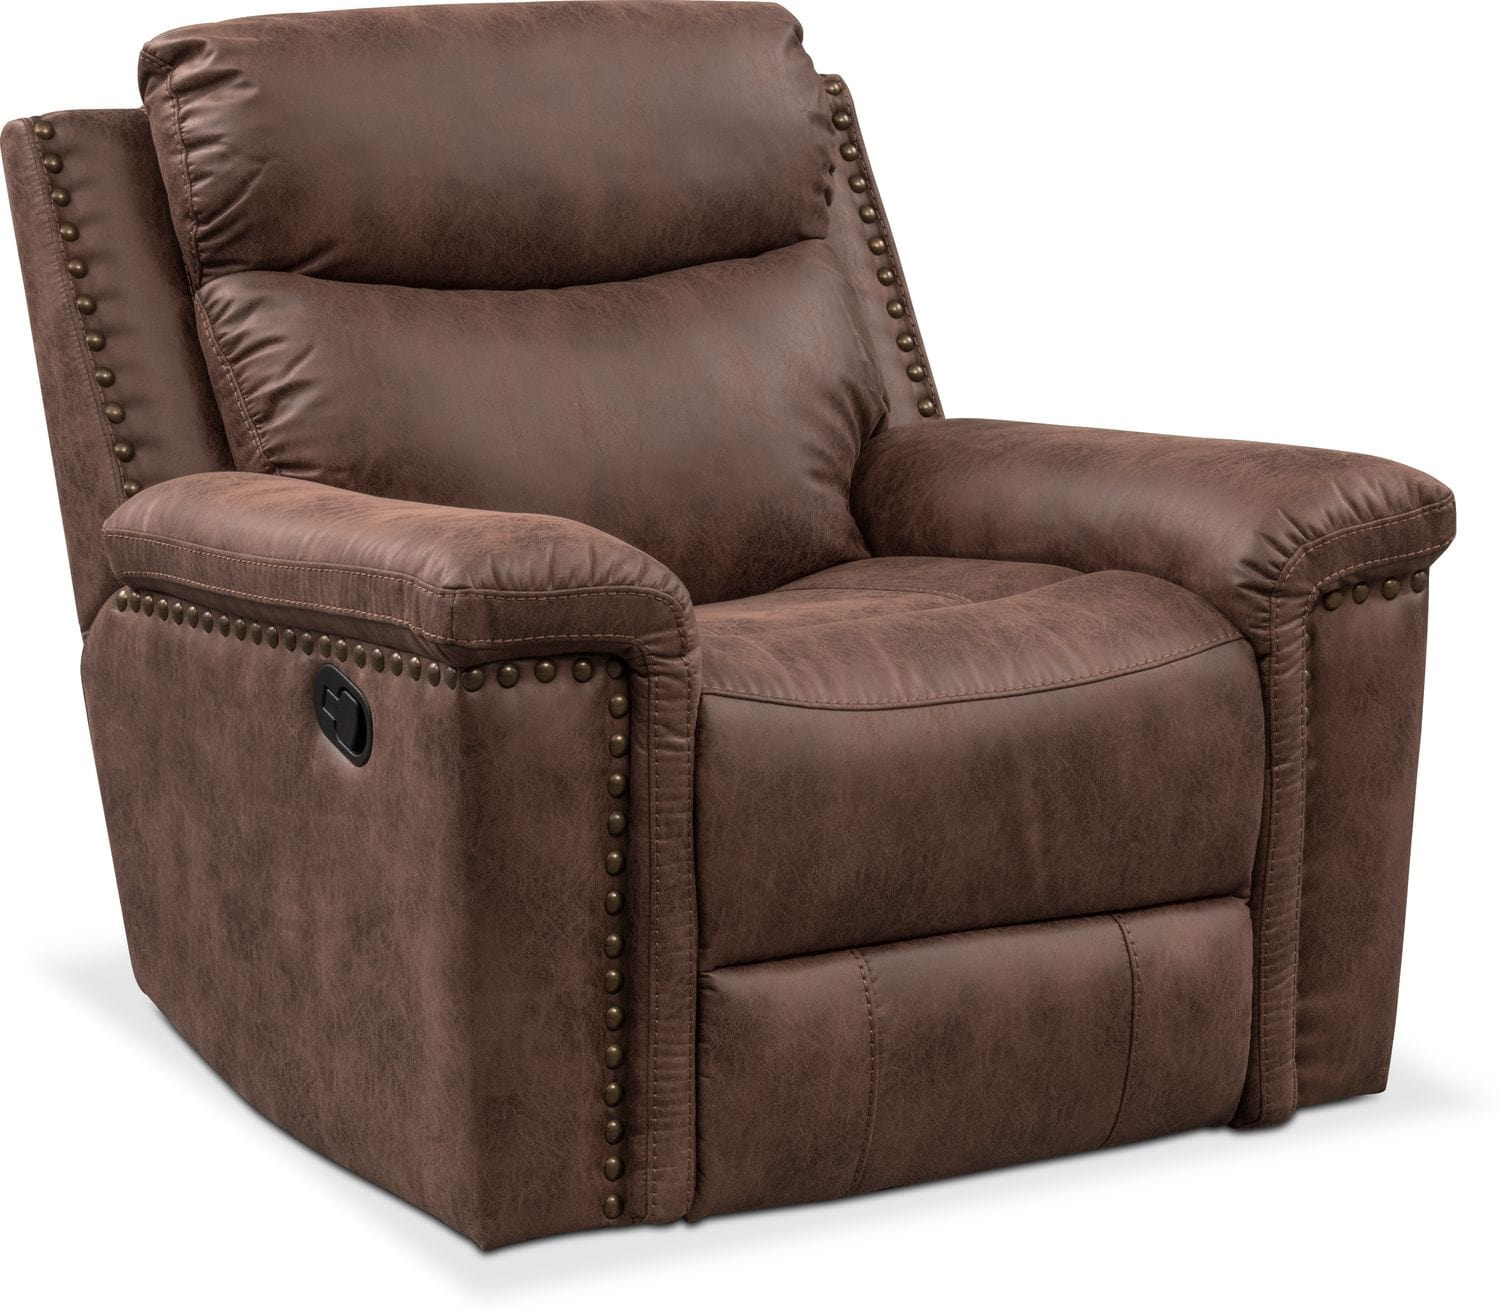 value recliner recliners furniture sears garden great city